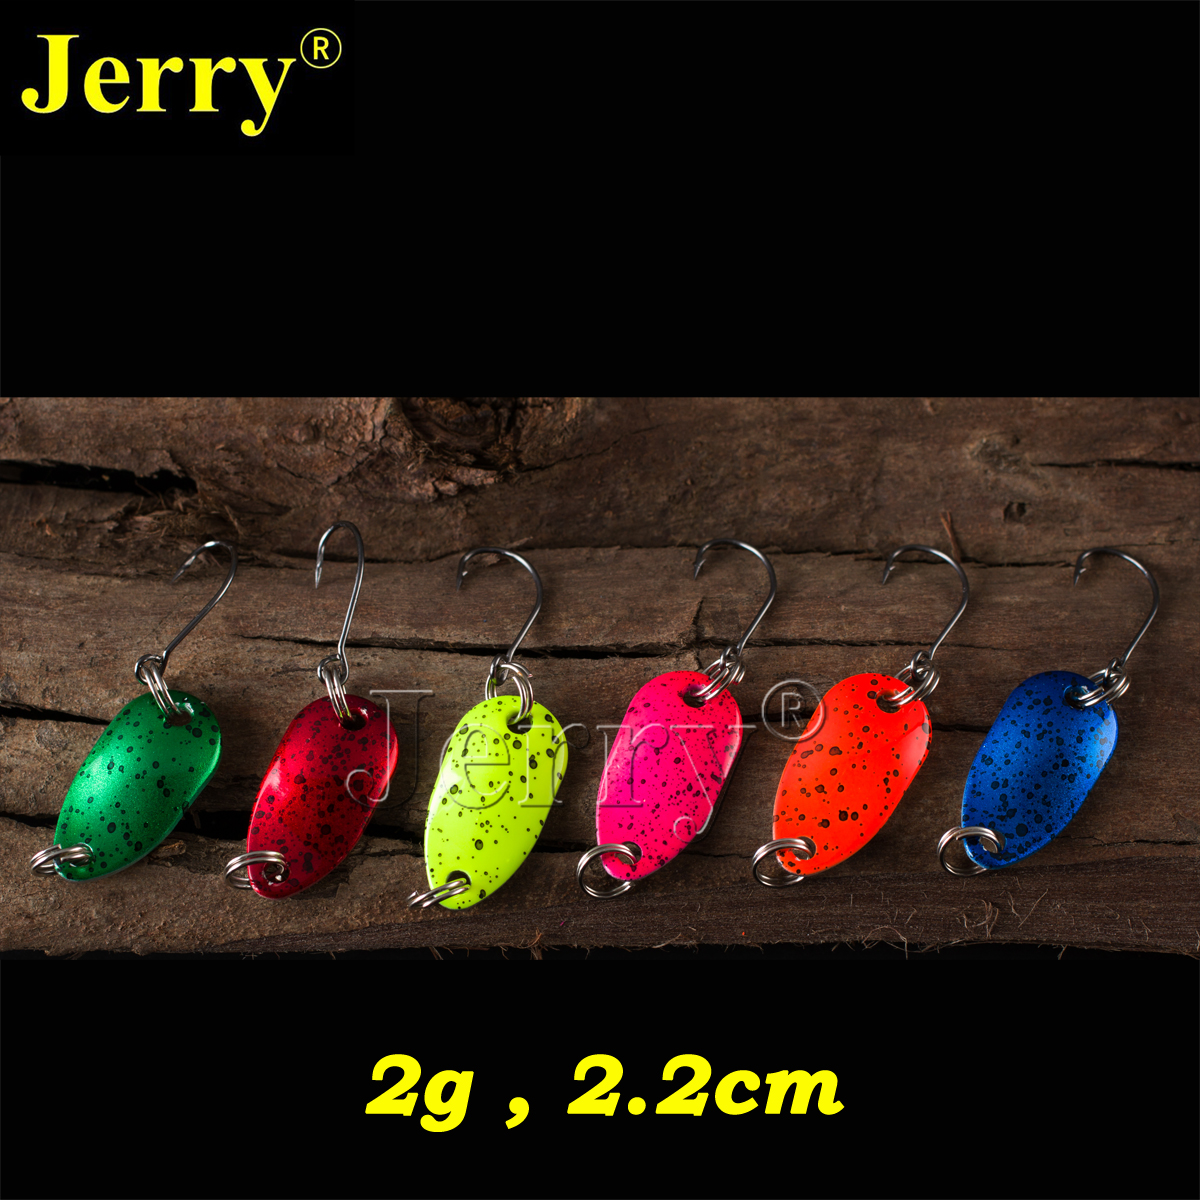 Jerry 6pcs 2g pesca micro mini trout spoon lures ultralight river fishing spoons spinner perch bait